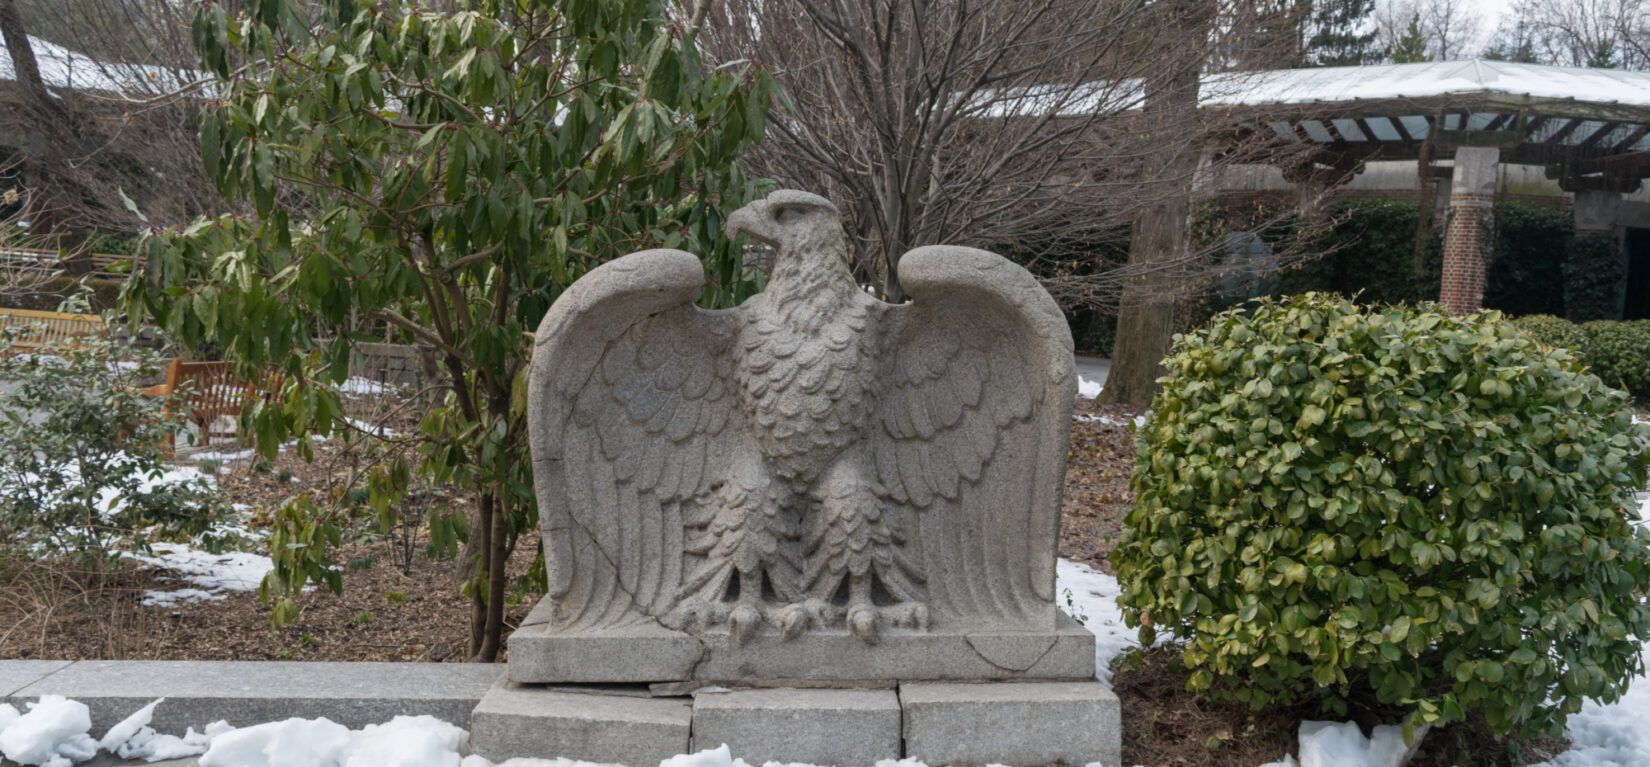 One of 8 eagle statues, pictured in winter